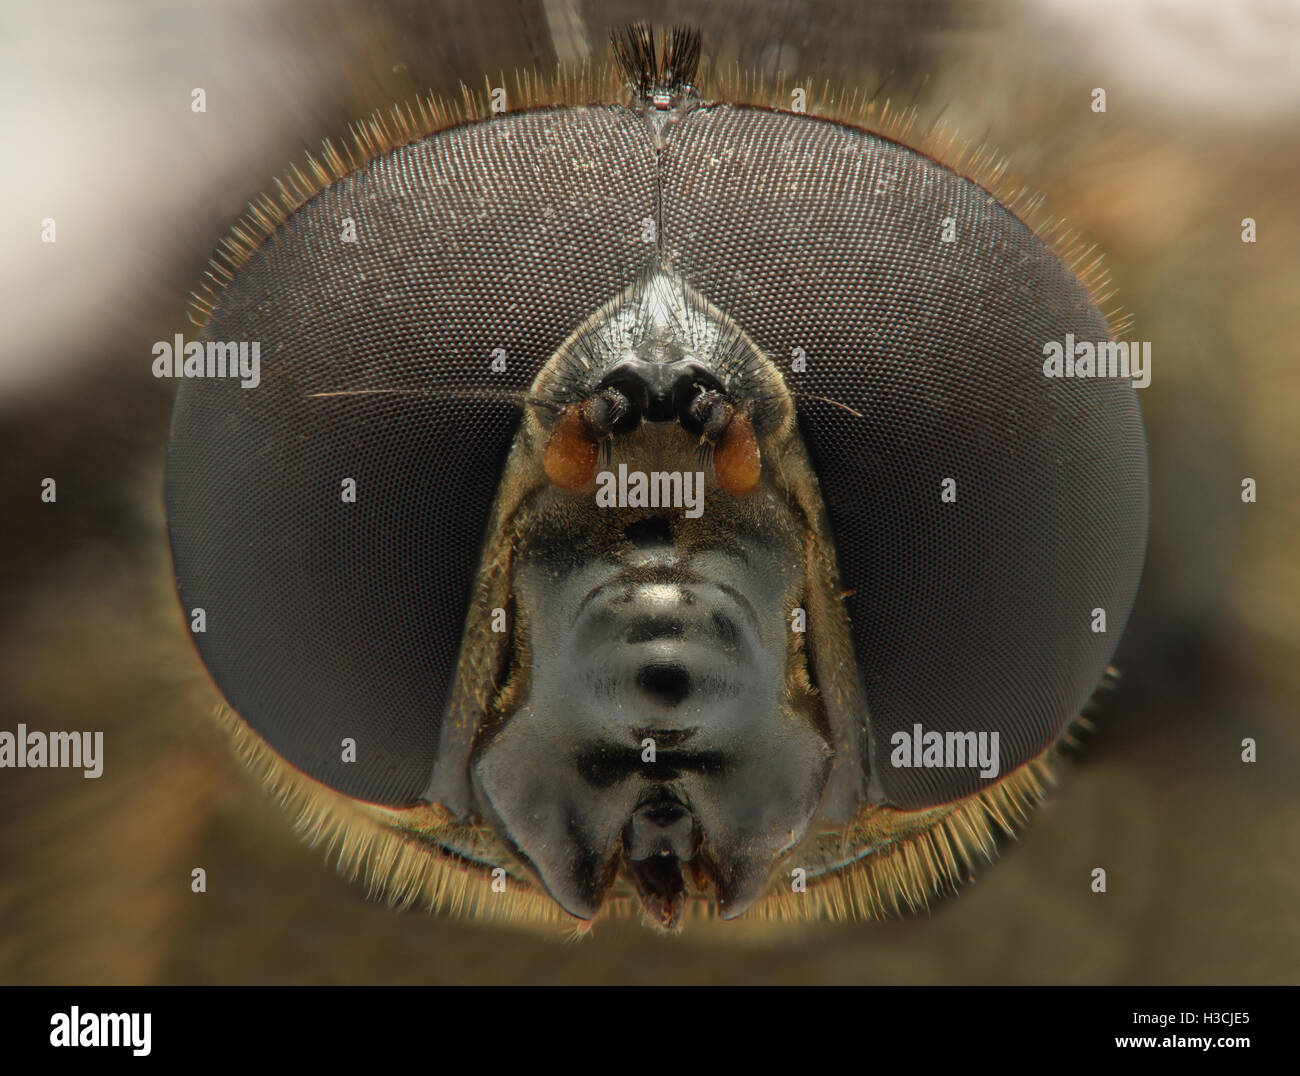 Extreme magnification - Fly imitating bee - Stock Image